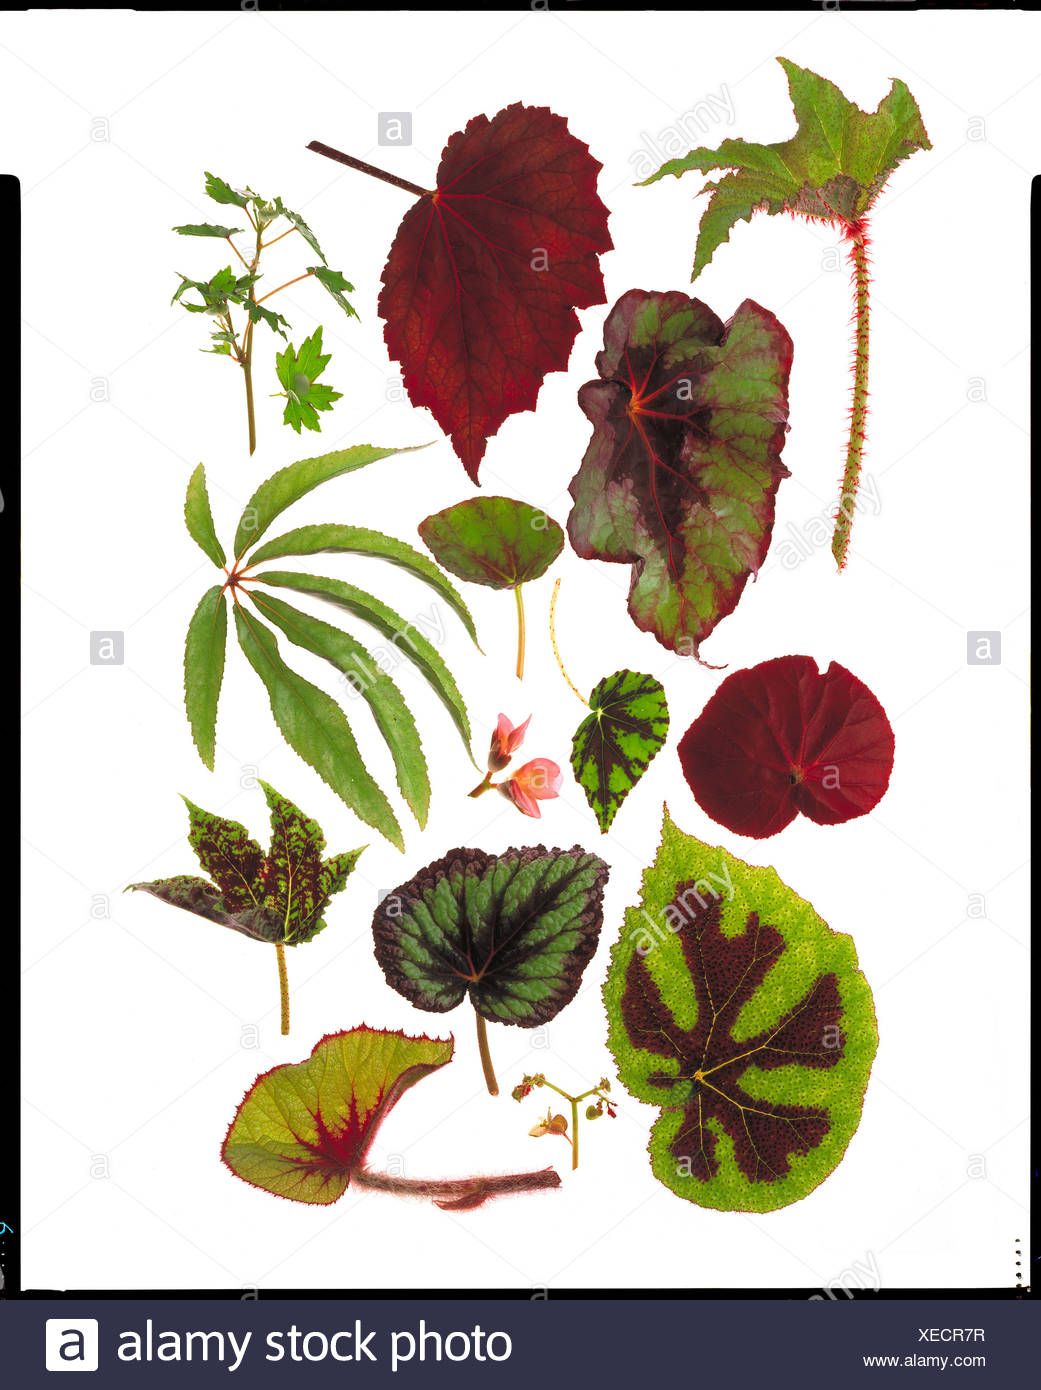 Varieties of Begonia leaves on white background - Stock Image